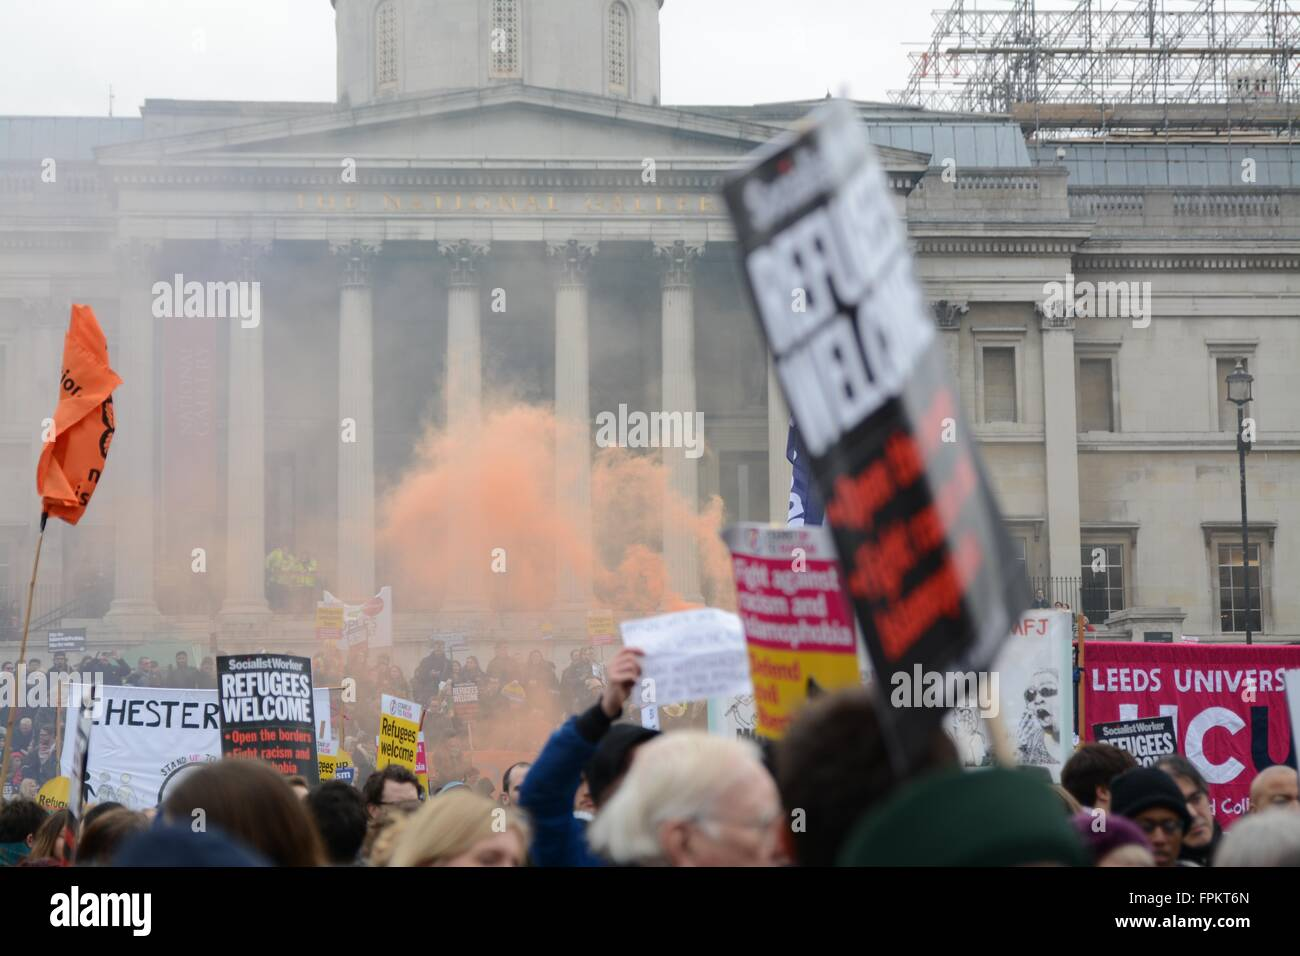 London, UK. March 19th 2016. Colour smoke rises from Trafalgar Square as thousands rally against racism in London. - Stock Image